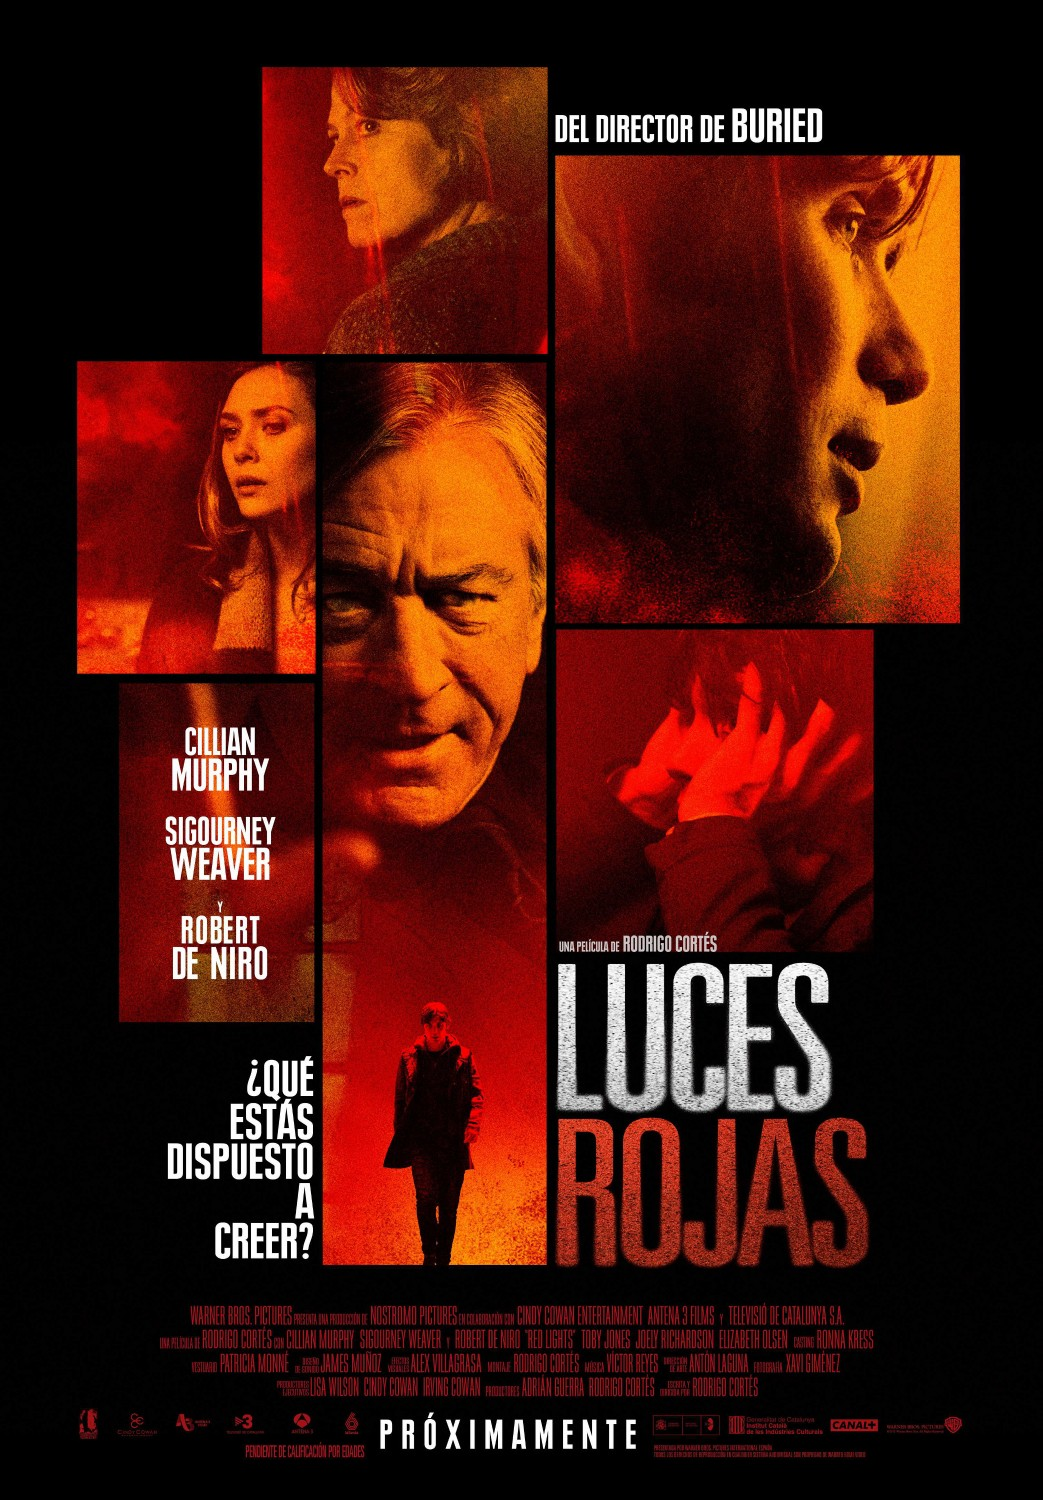 Luces Rojas trailer y poster final